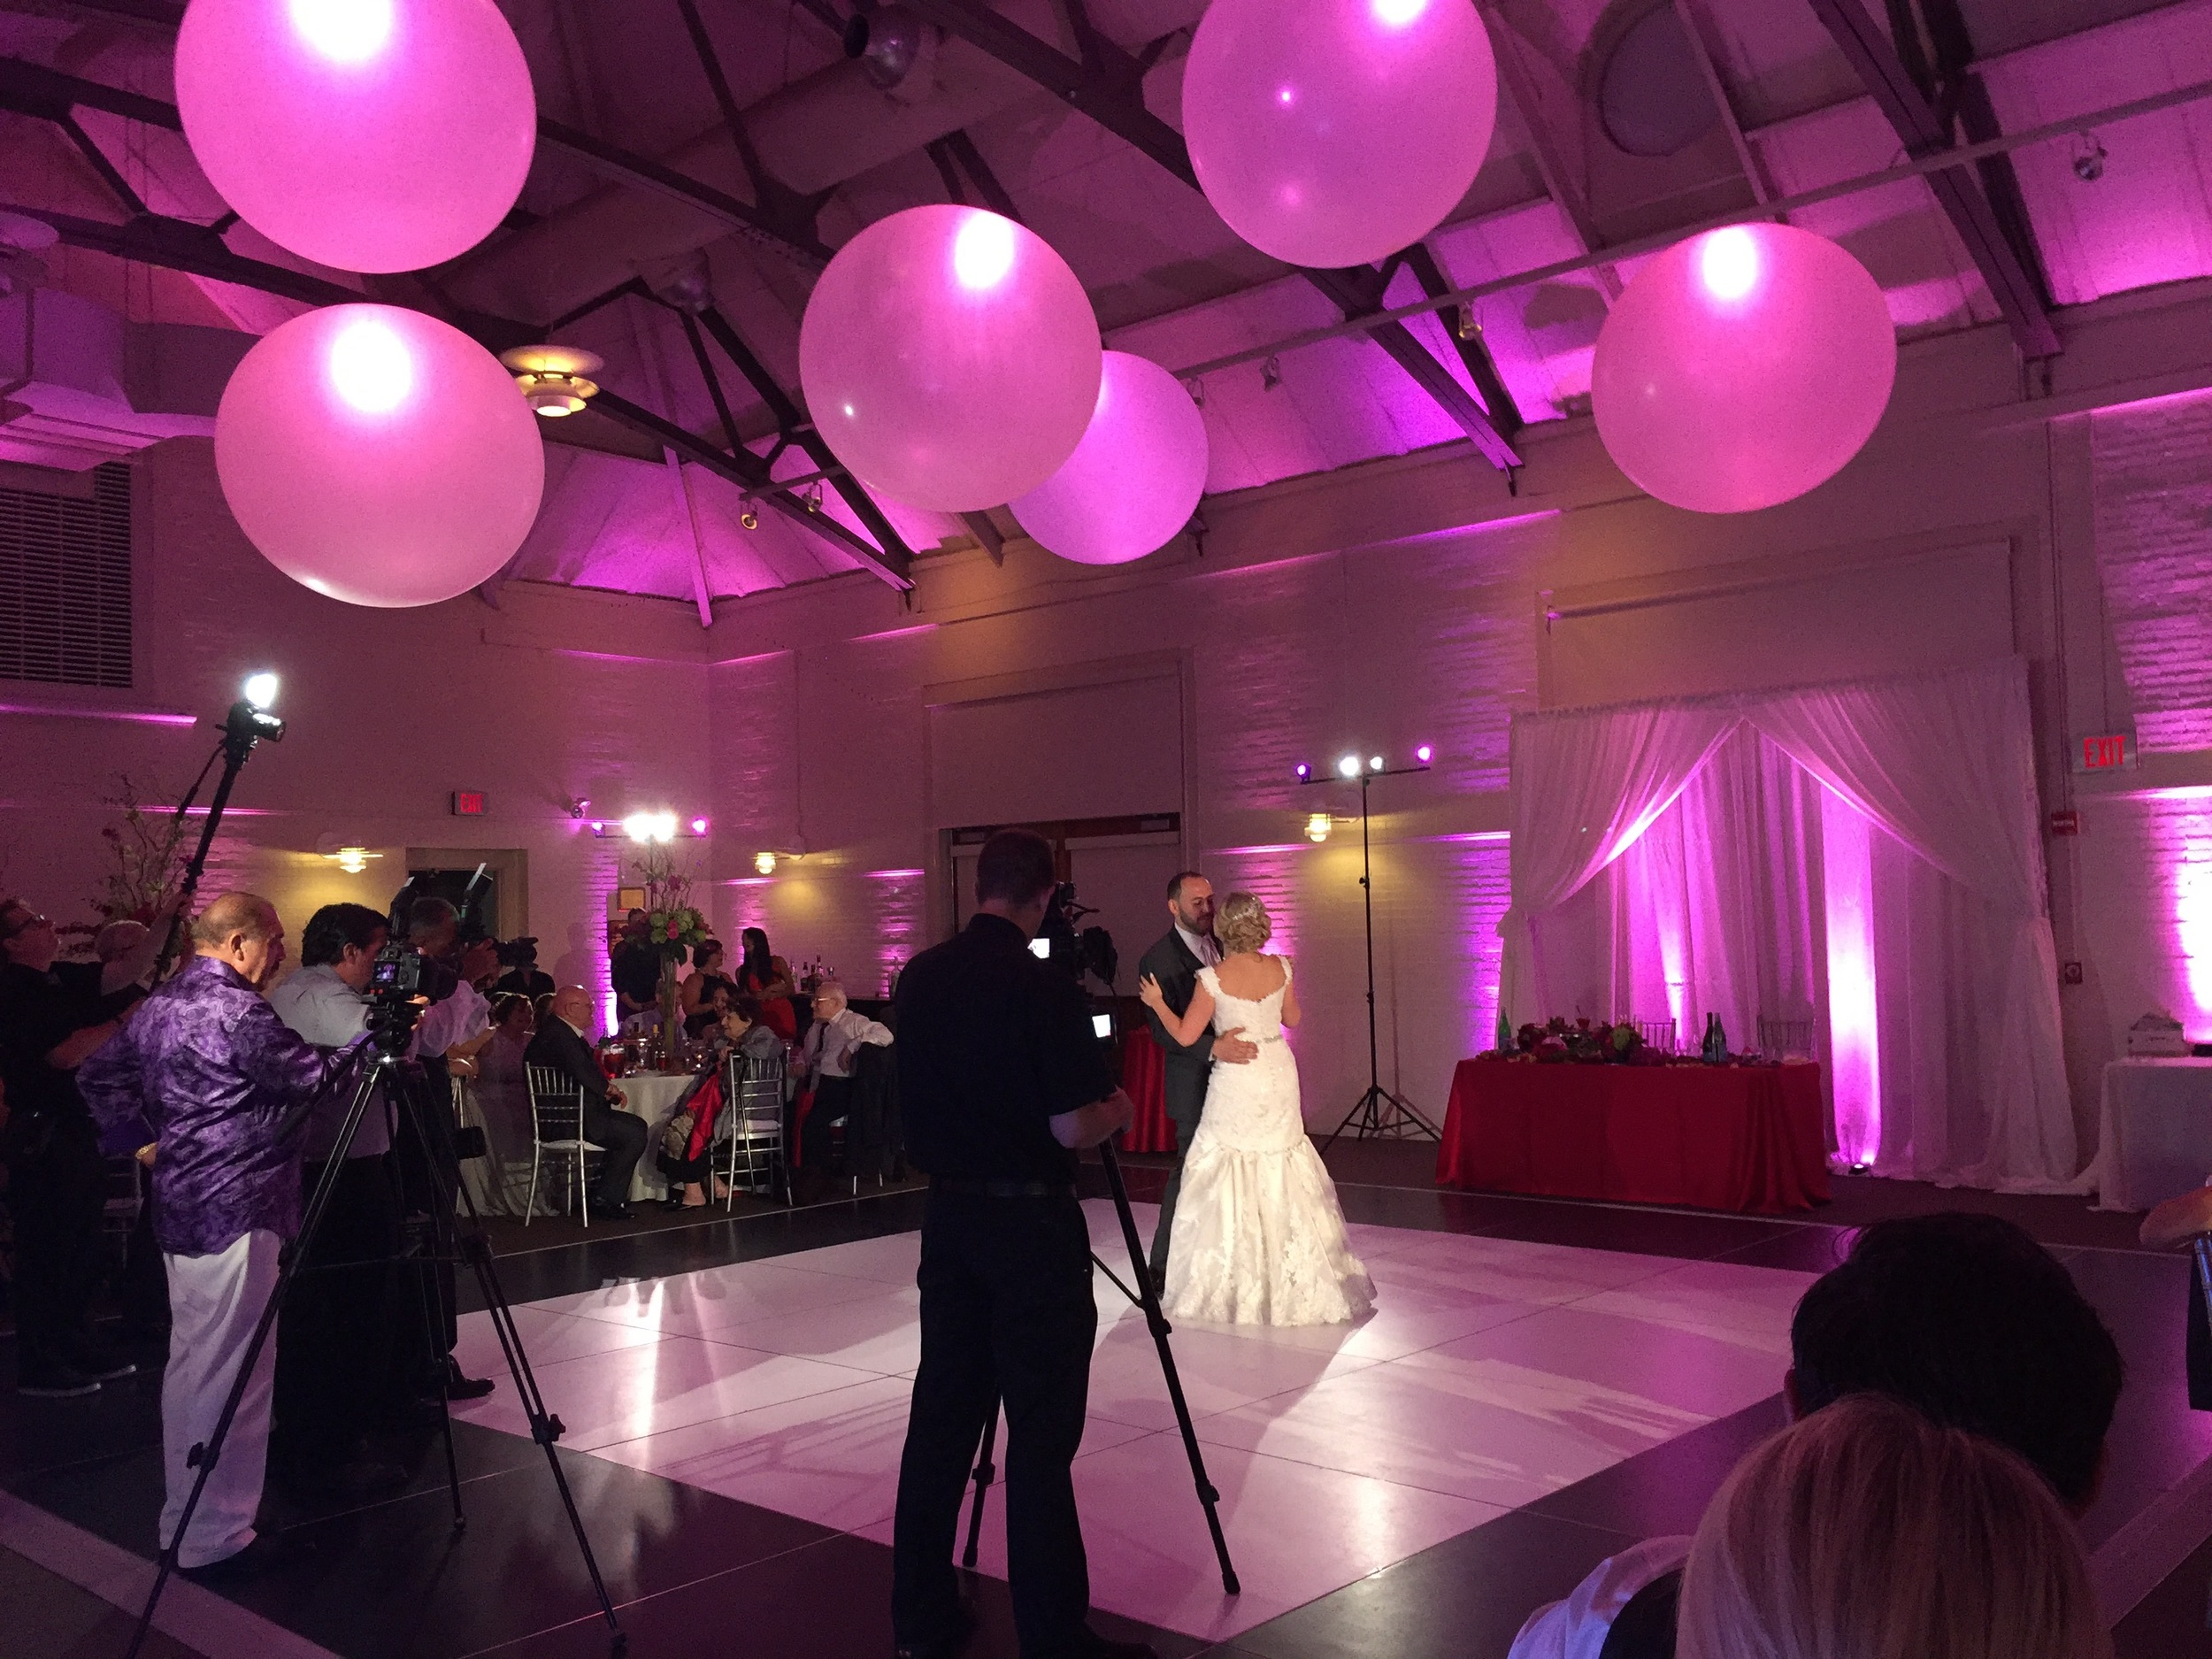 When Tatyana and Vadim took to the floor for their first dance, the room was transformed into a swirling dance of pink and white, and specially positioned spotlights rose on the dance floor, making them the stars of the show.